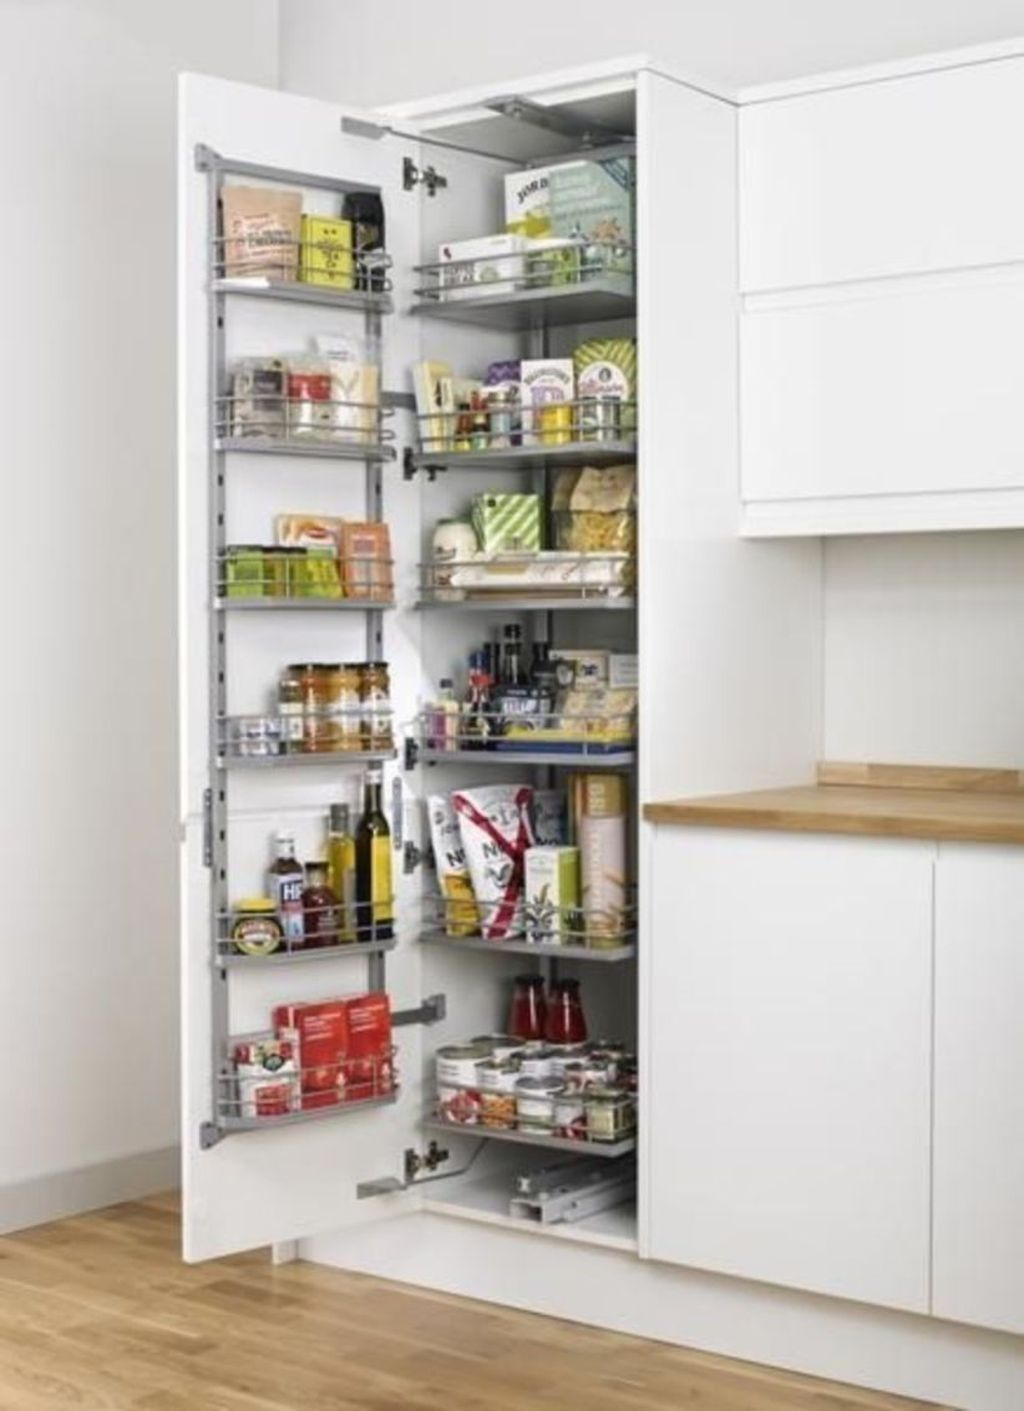 30+ Trendy Kitchen Storage Solutions Ideas For You #storagesolutions